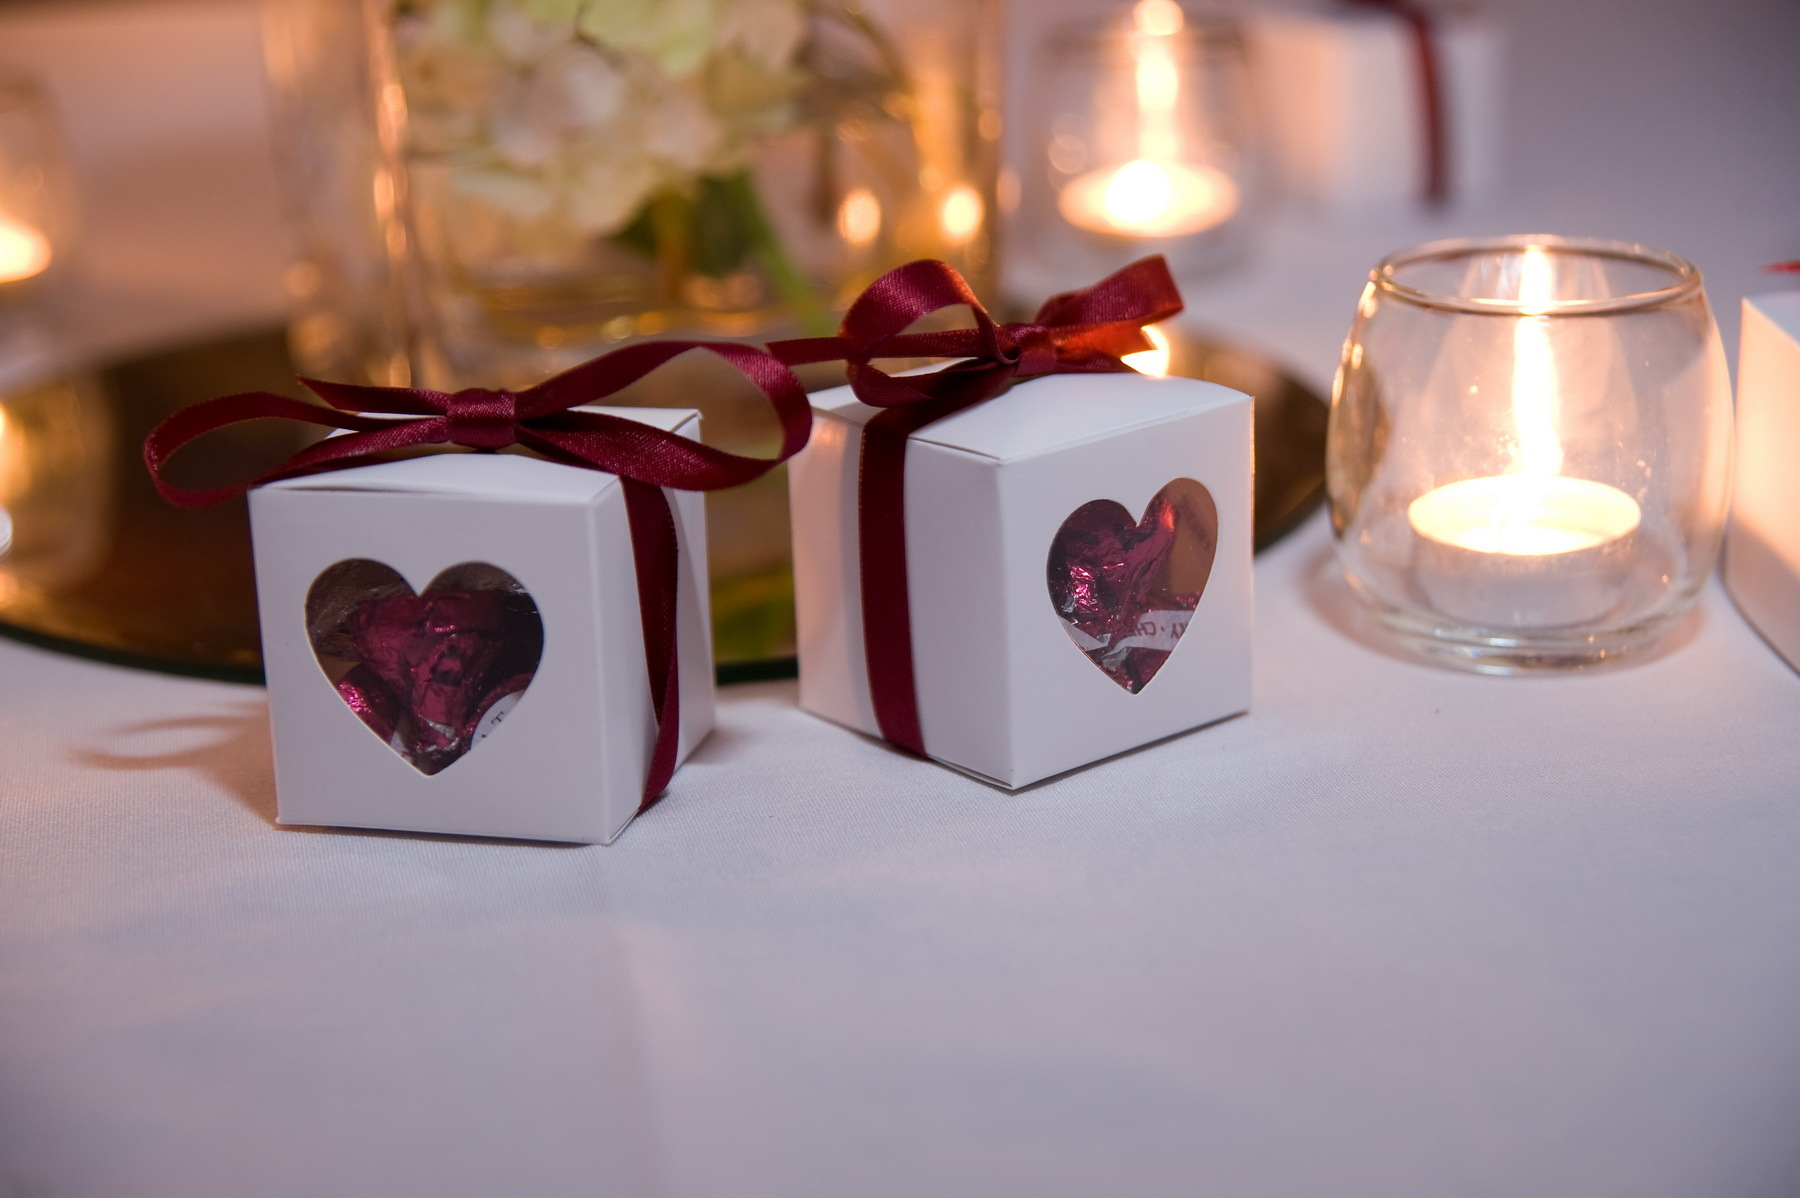 Reception, Flowers & Decor, Favors & Gifts, Favors